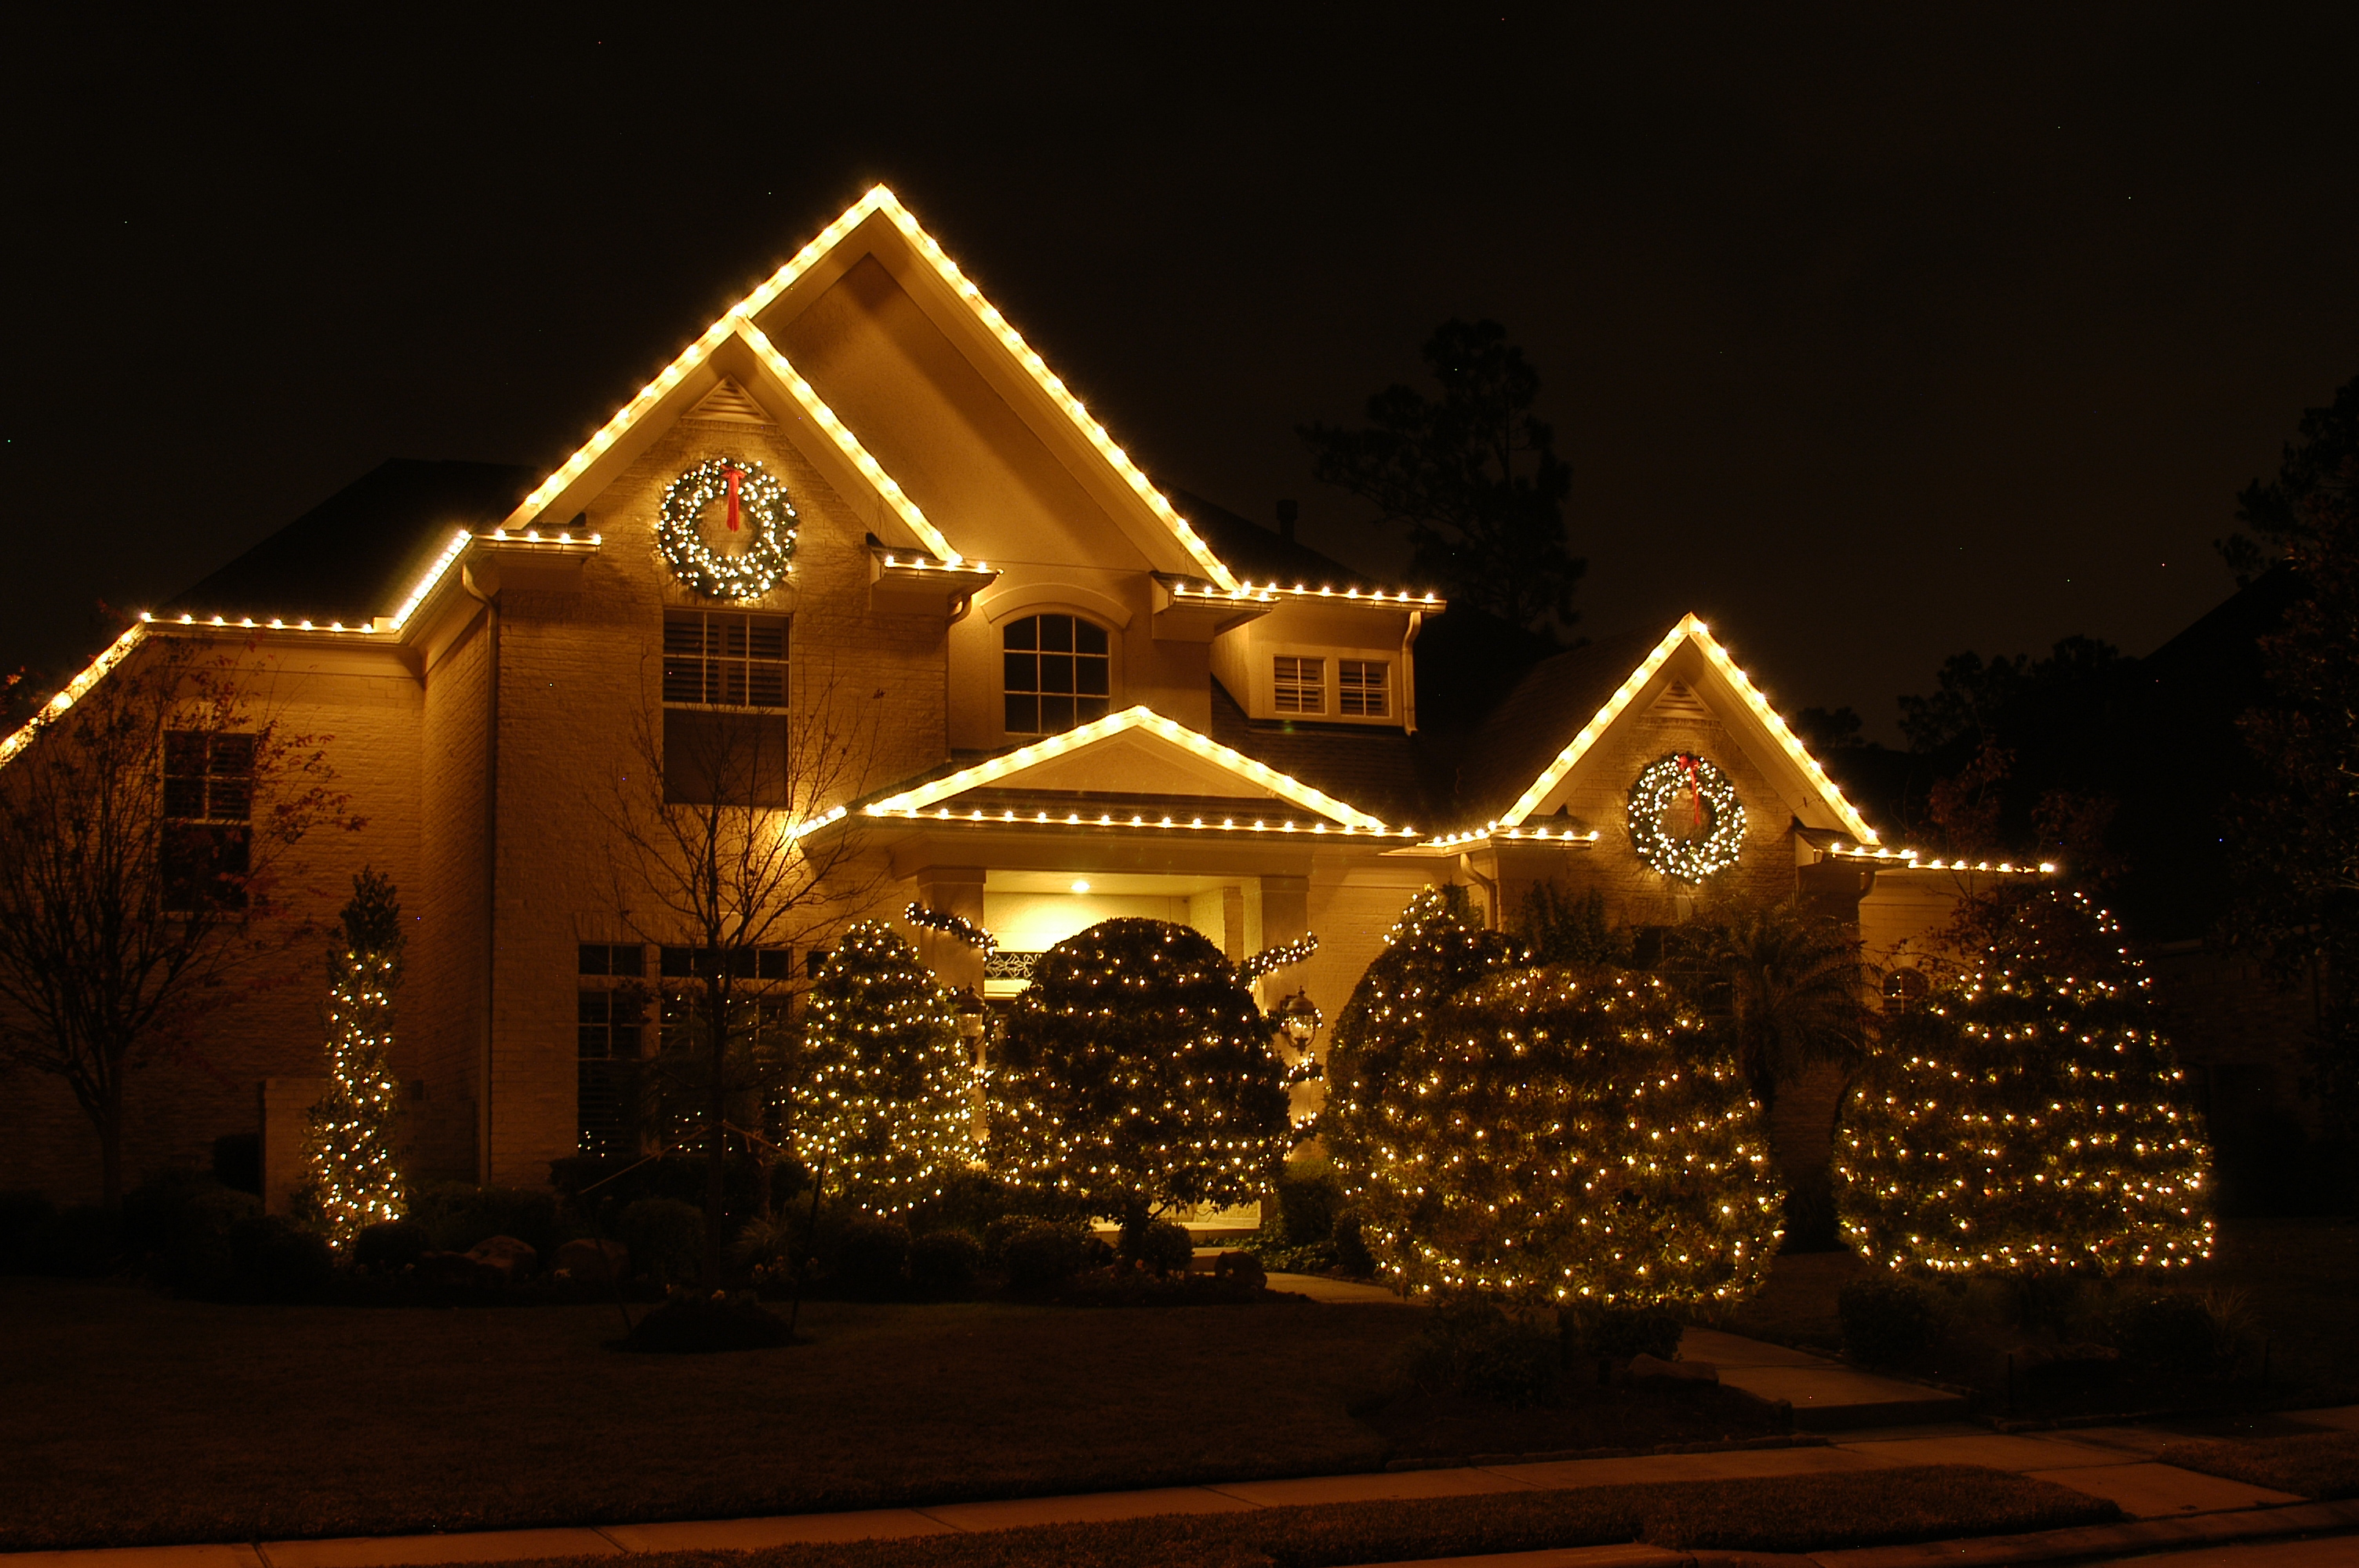 Commercial christmas decorations outdoor - Off Season Holiday Lighting Storage